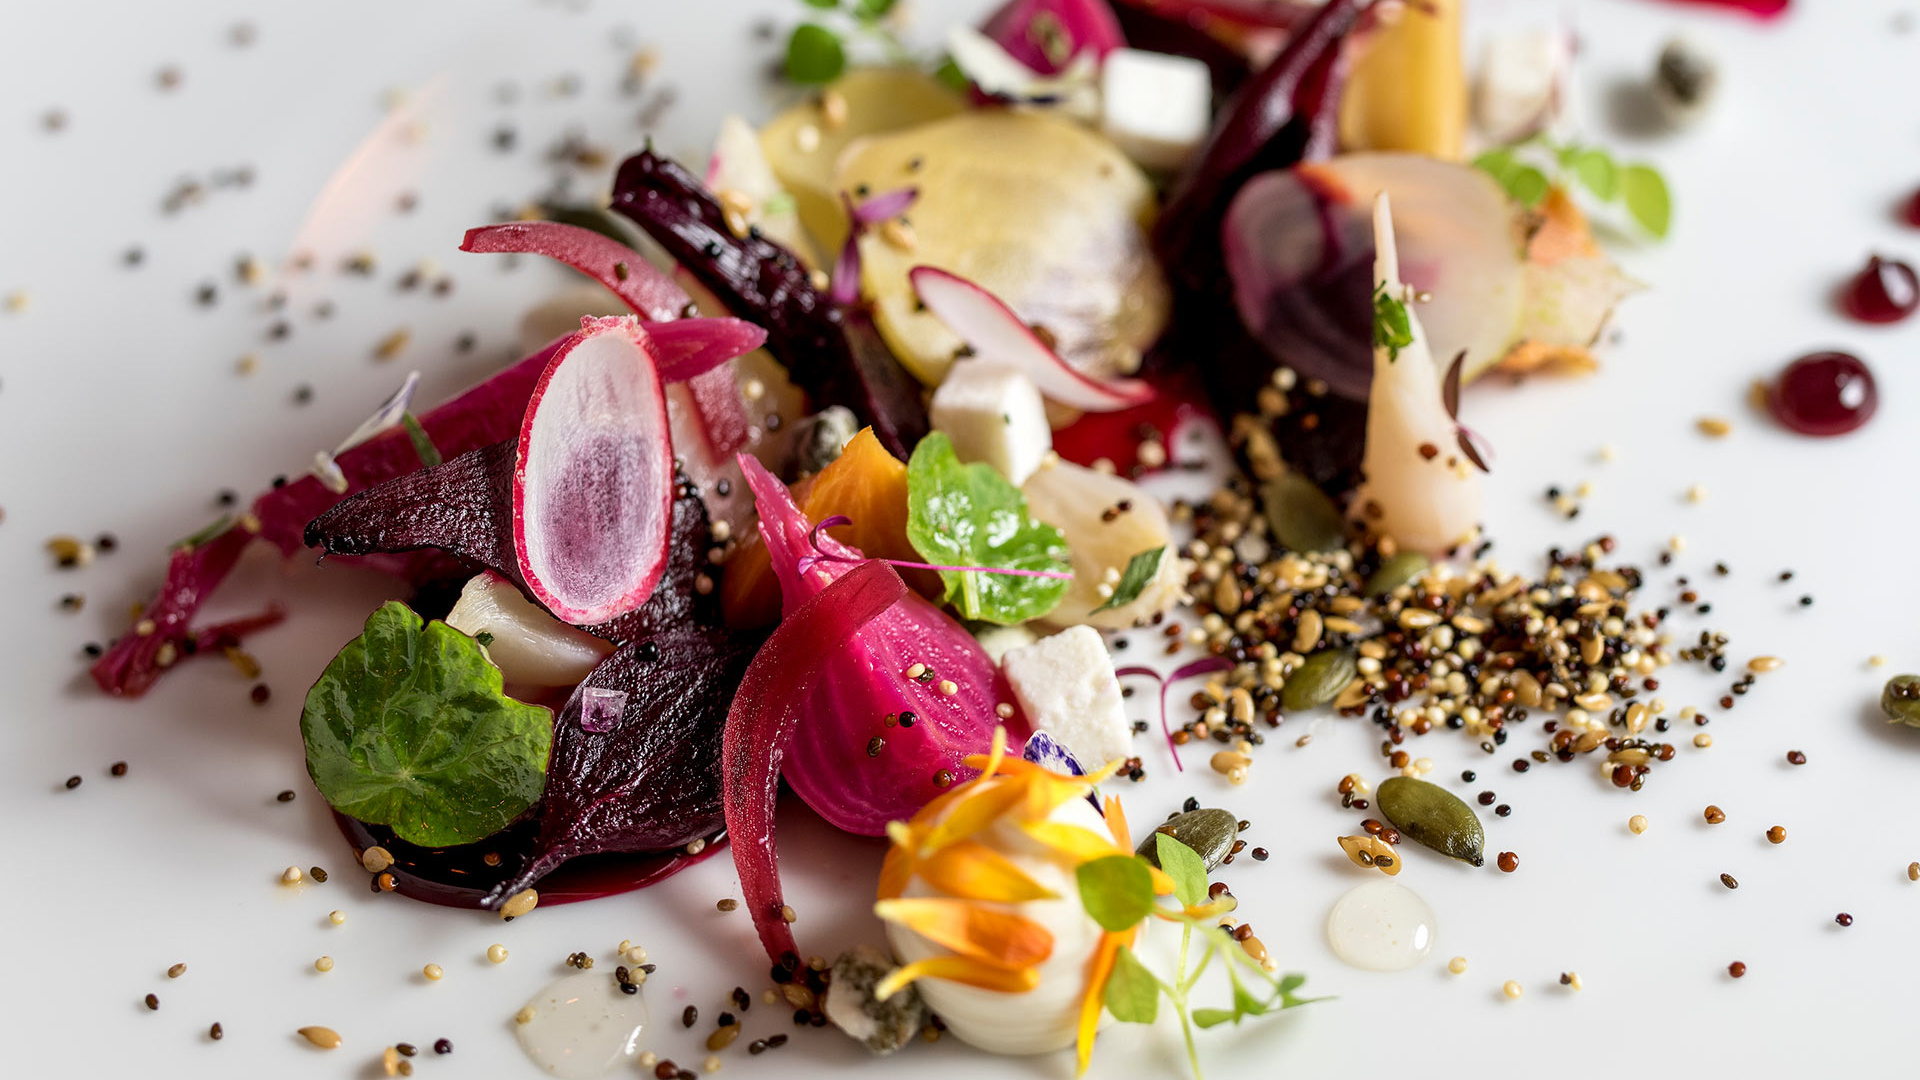 Heritage beets at Ormer, in the Flemings hotel in Mayfair